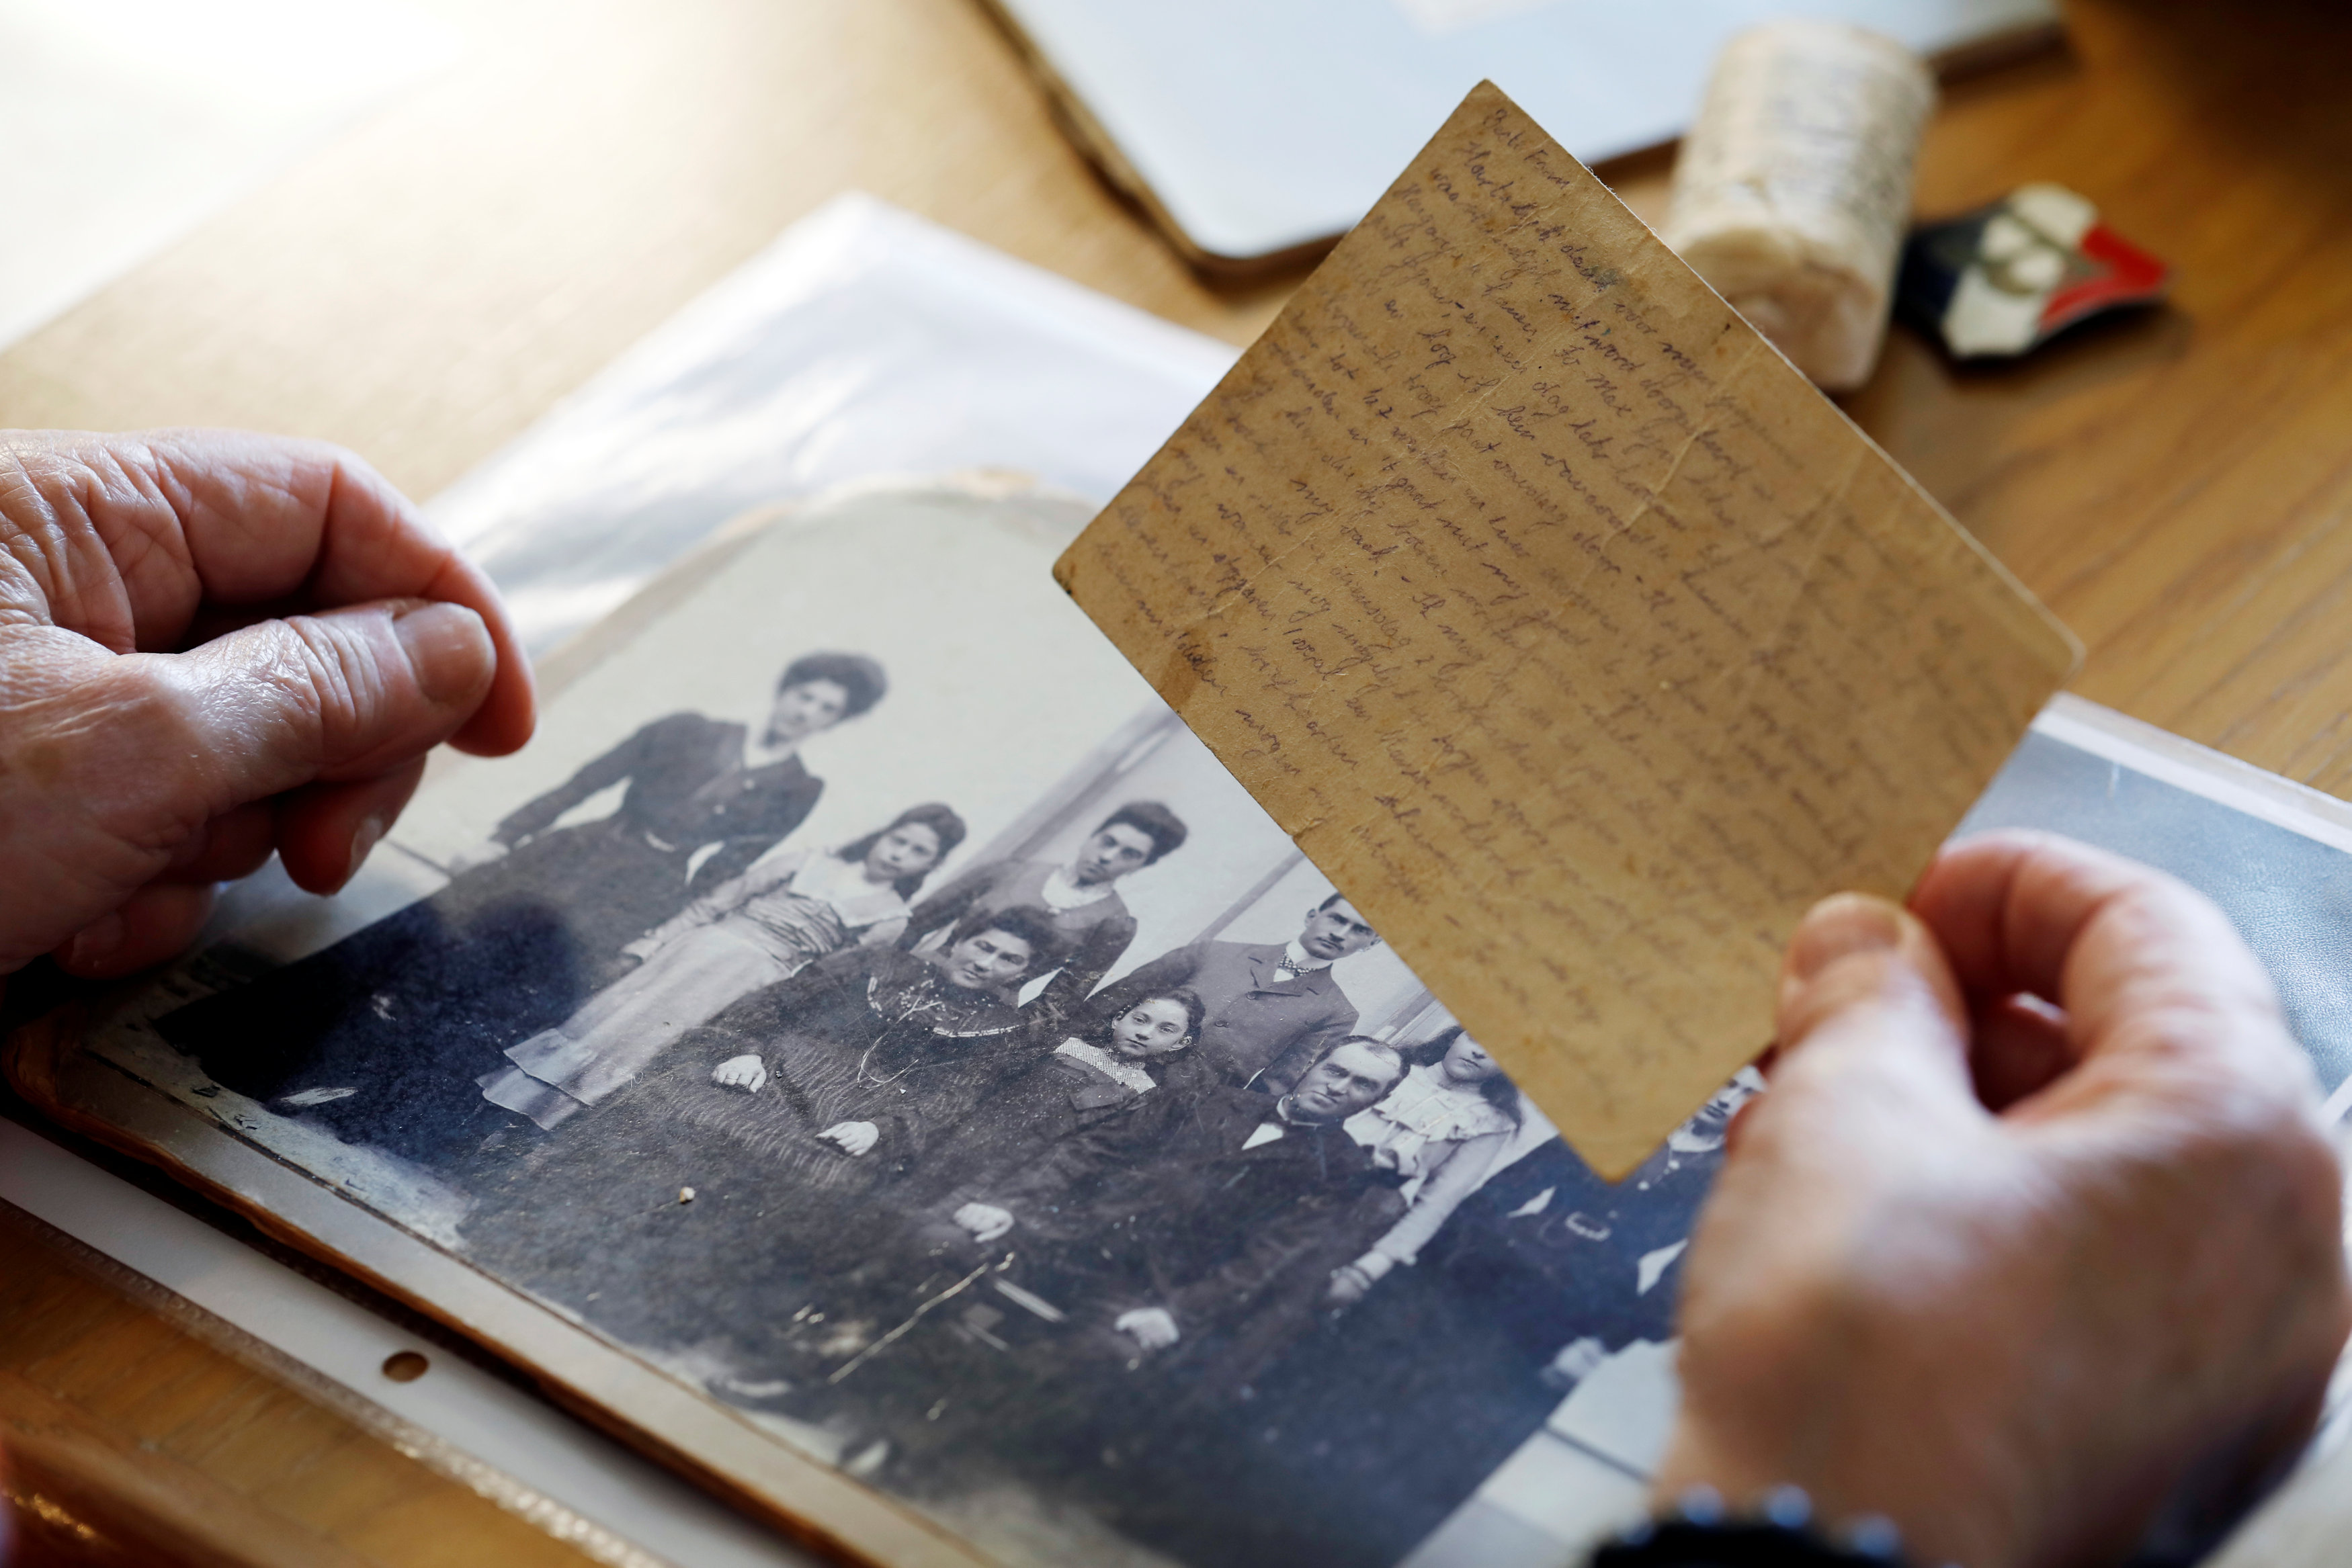 Holocaust survivor Betty Kazin Rosenbaum, 76, holds an old letter and a family photo during an interview in her house in Zichron Yaakov, Israel, April 10, 2018. Picture taken April 10, 2018. REUTERS/Nir Elias